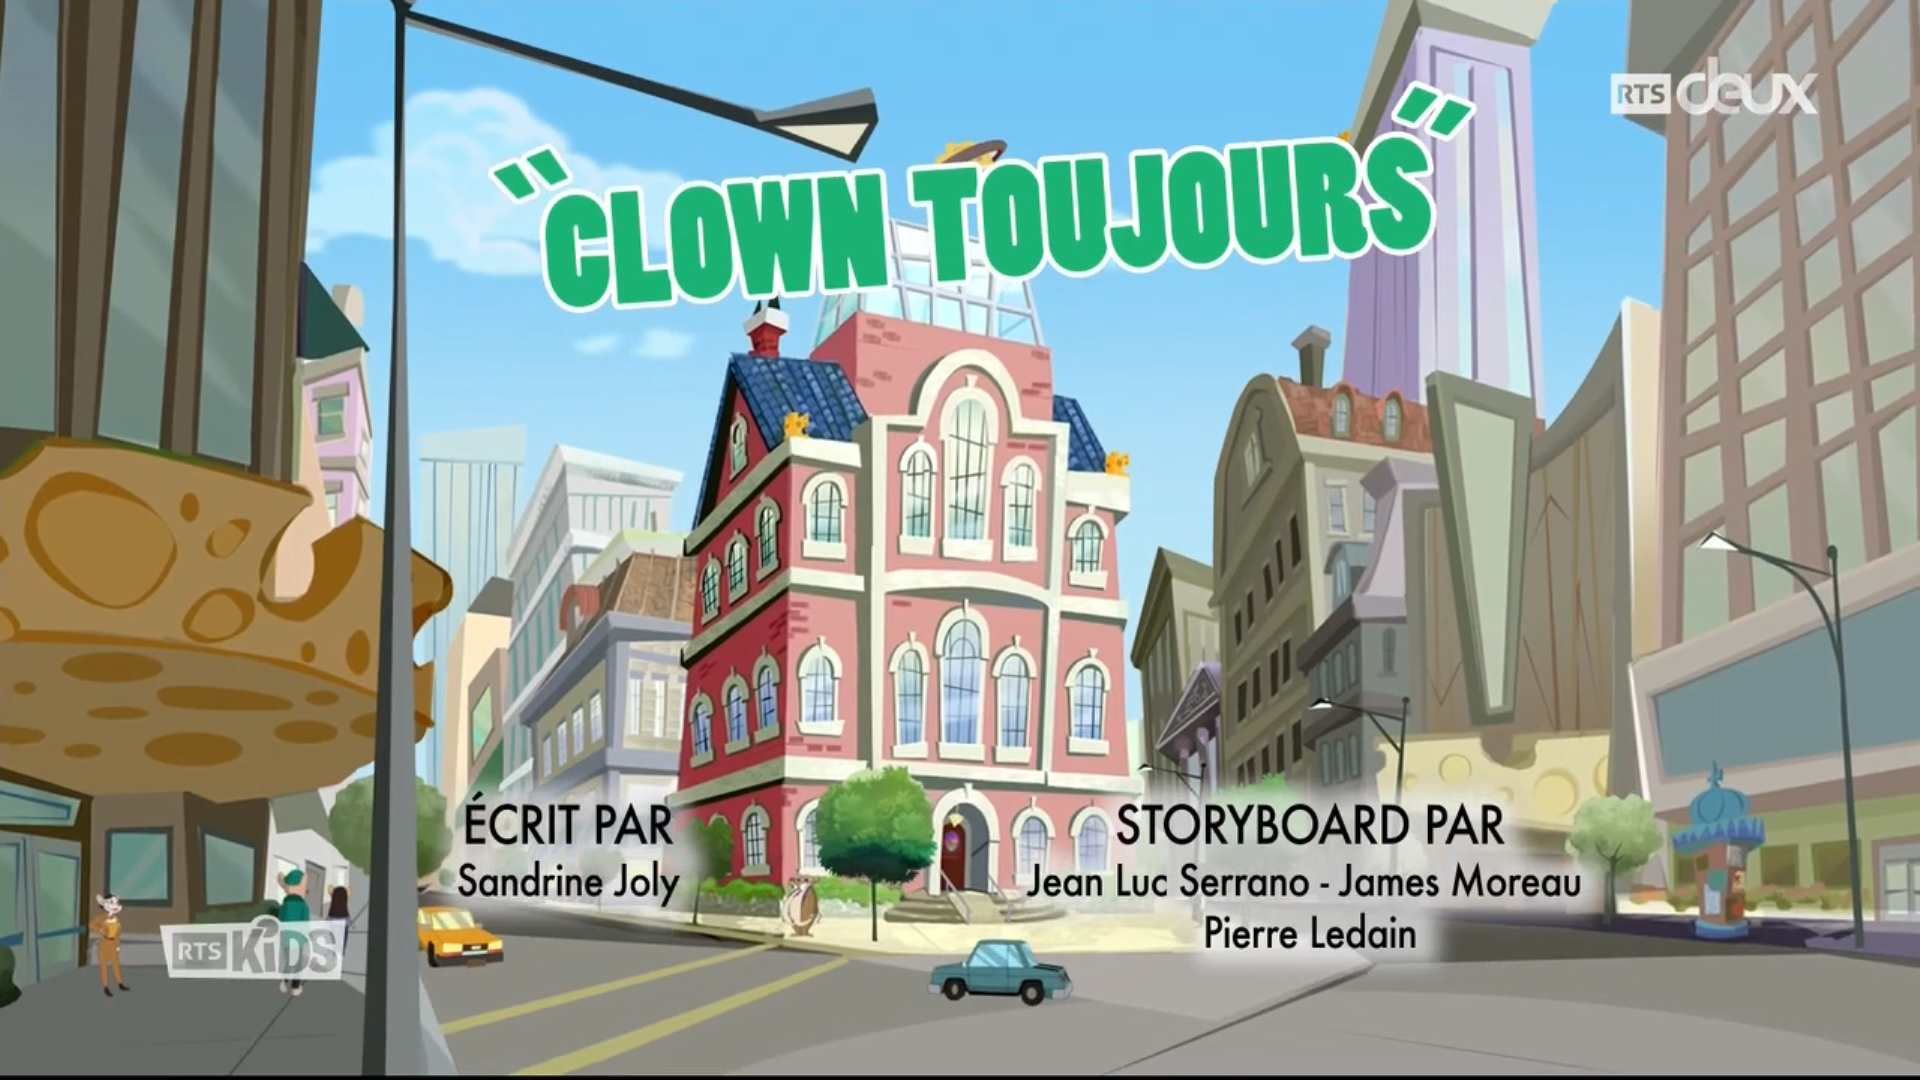 Geronimo Stilton - 3x?? - Clown toujours